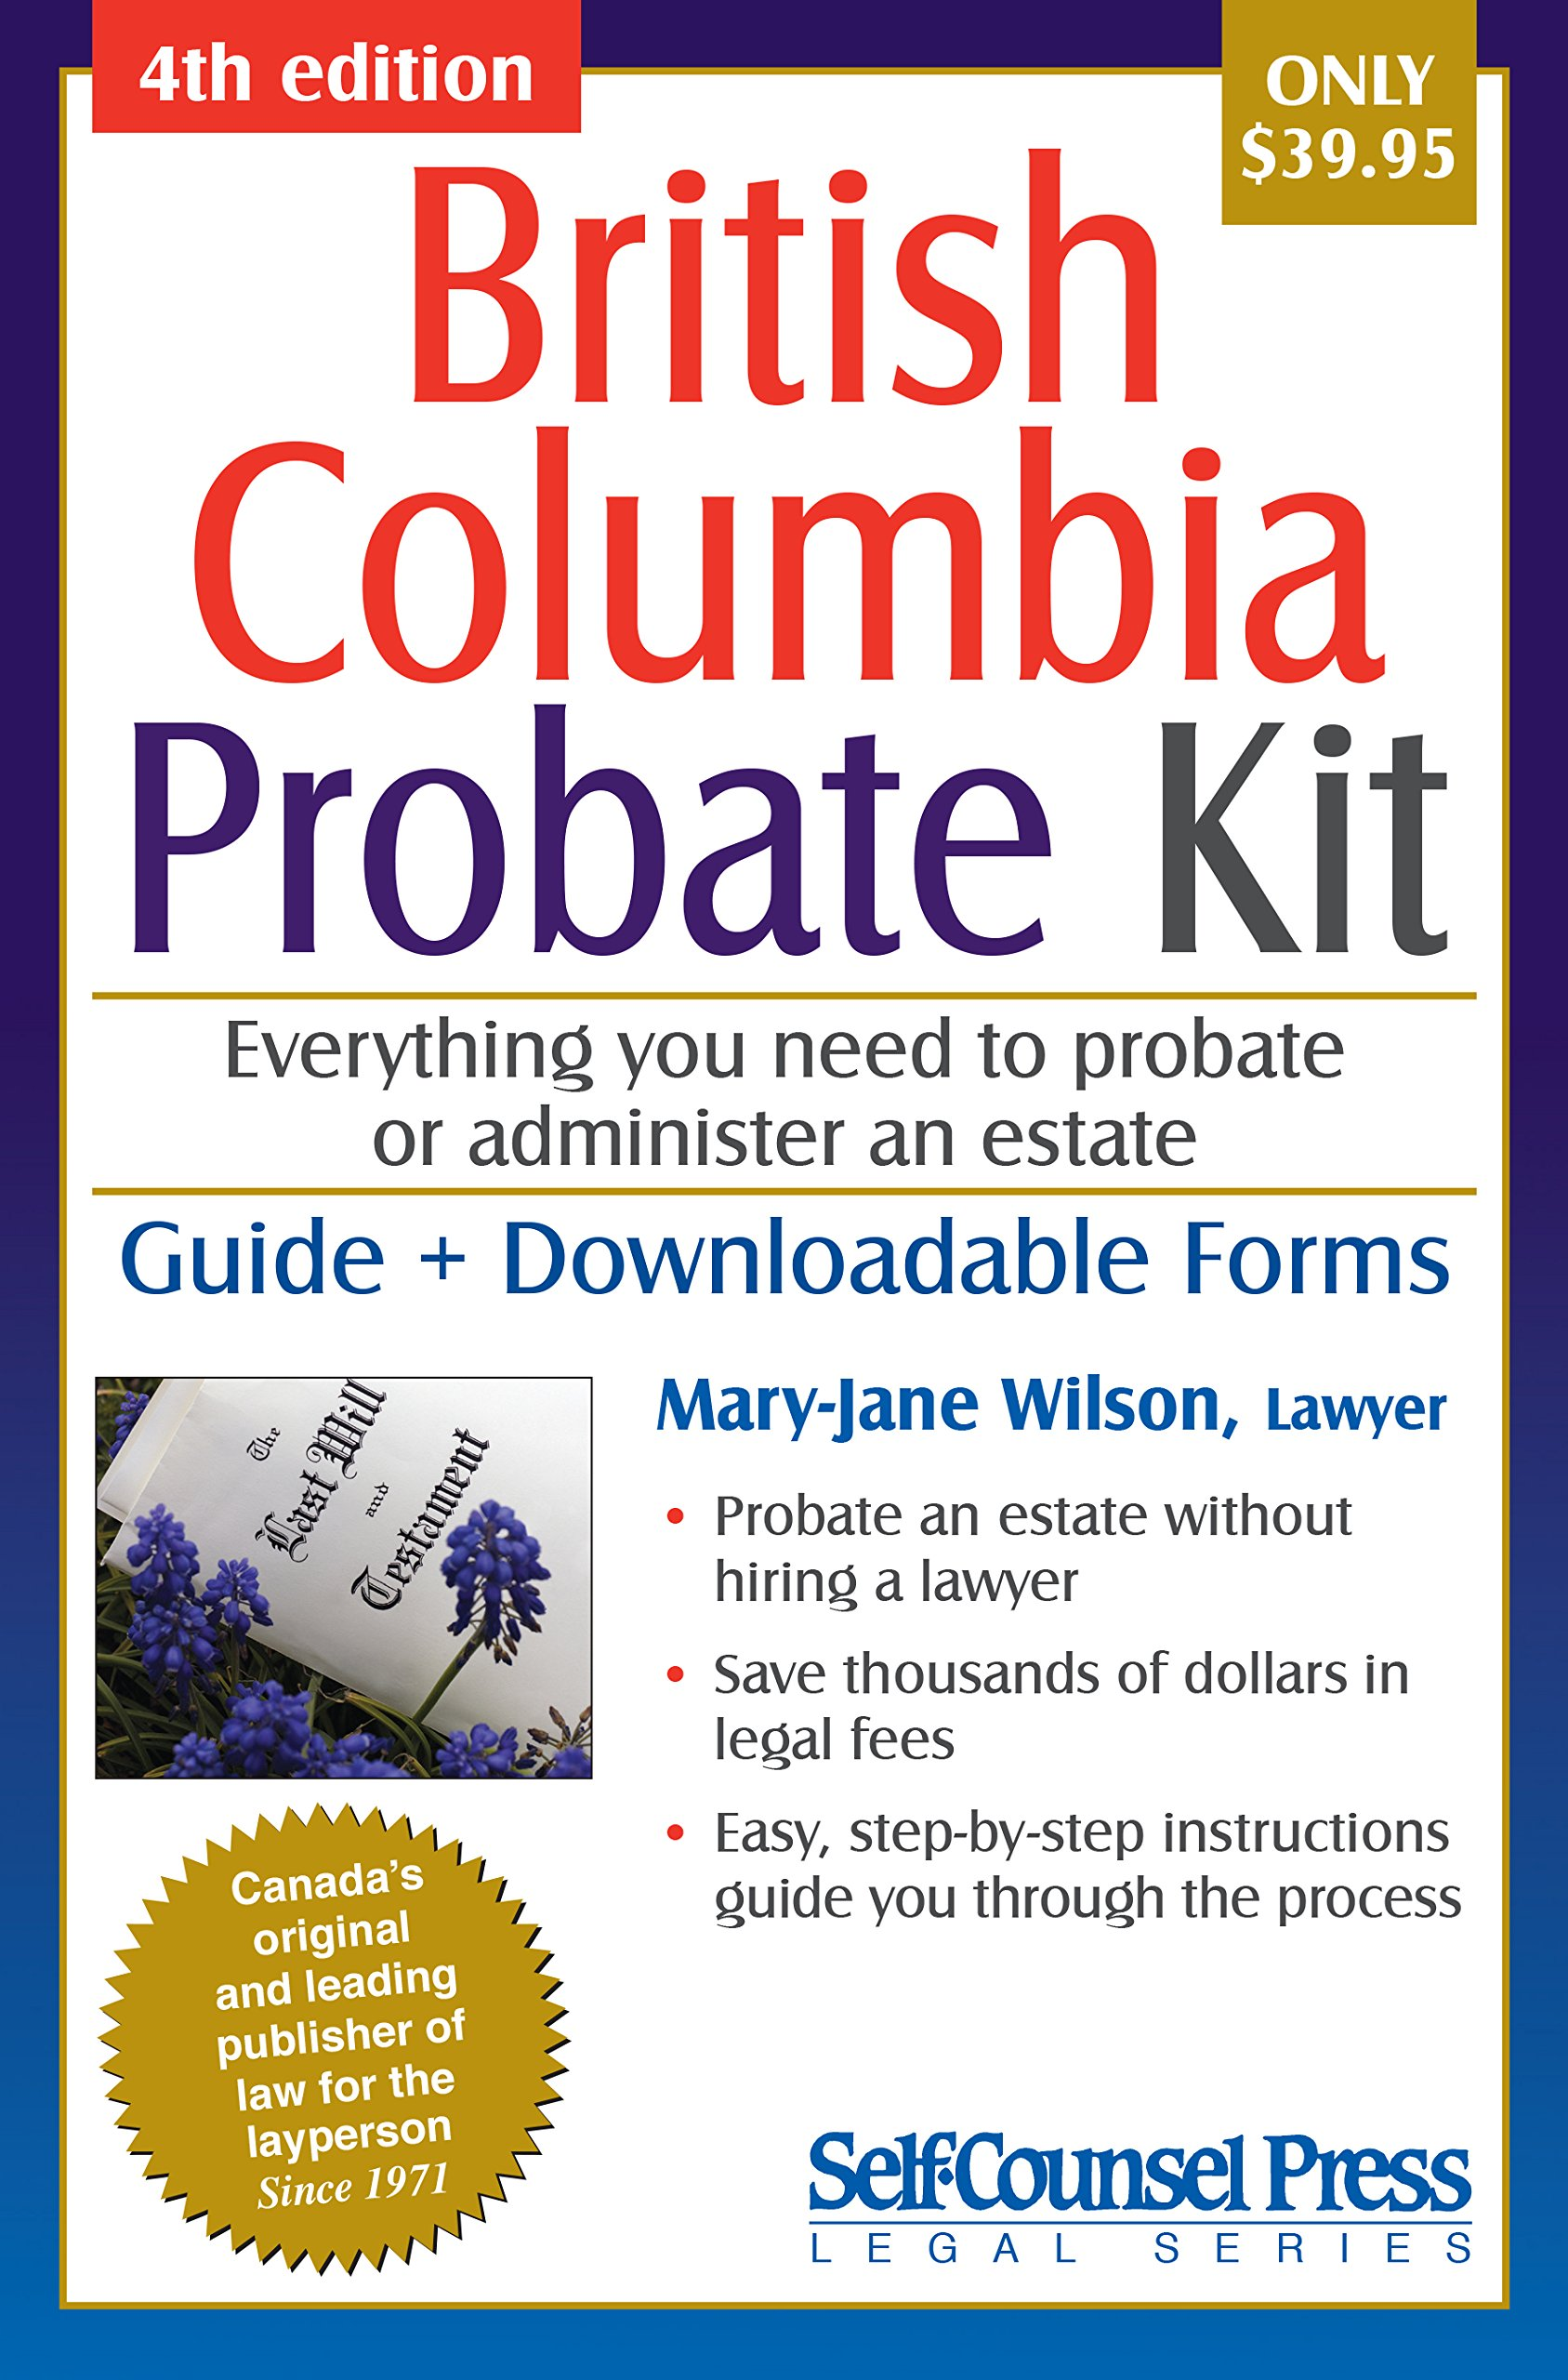 Probate kit for british columbia everything you need to probate an probate kit for british columbia everything you need to probate an estate mary jane wilson 9781770402706 books amazon solutioingenieria Image collections